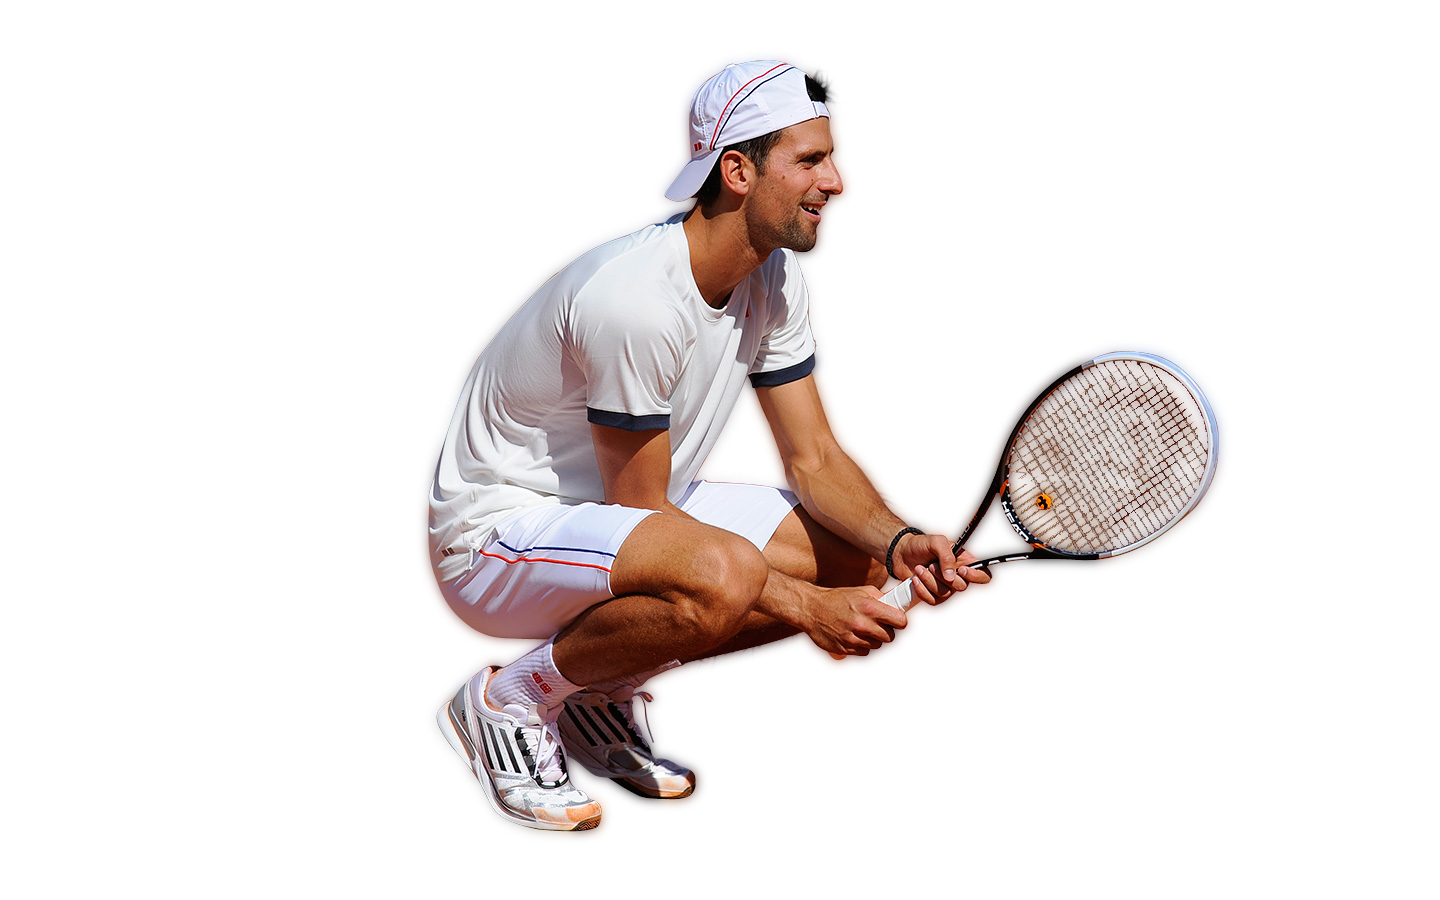 Novak Djokovic Transparent Background-Novak Djokovic Transparent Background-17